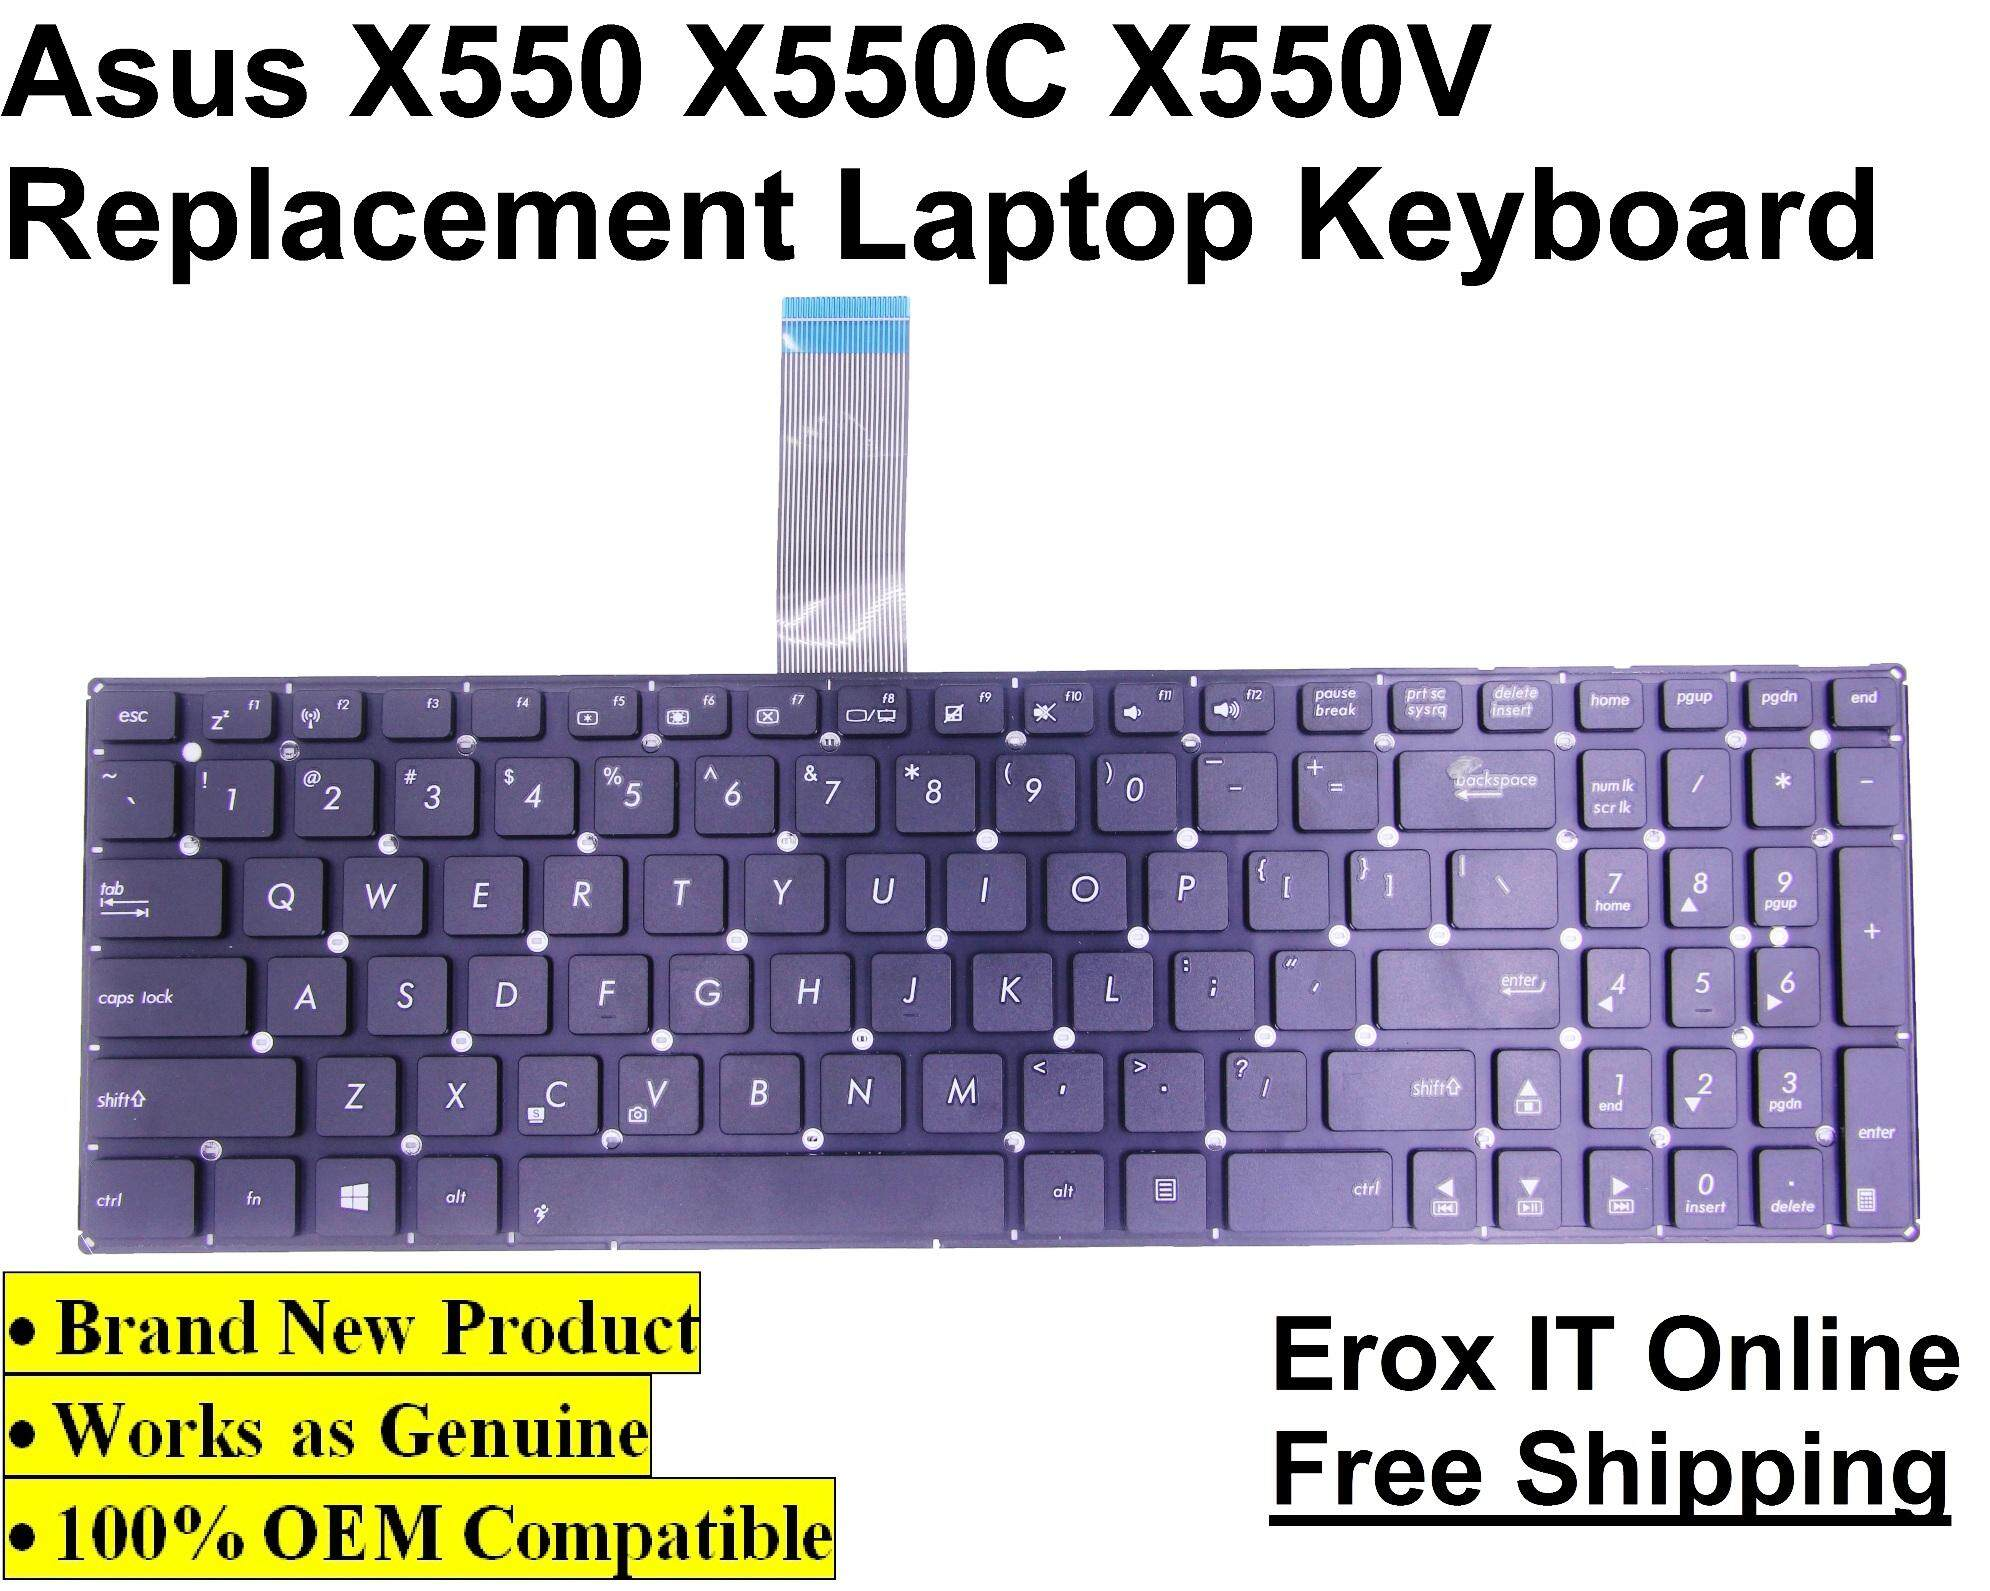 Asus A550V Replacement Keyboard /Asus A550 Replacement Keyboard